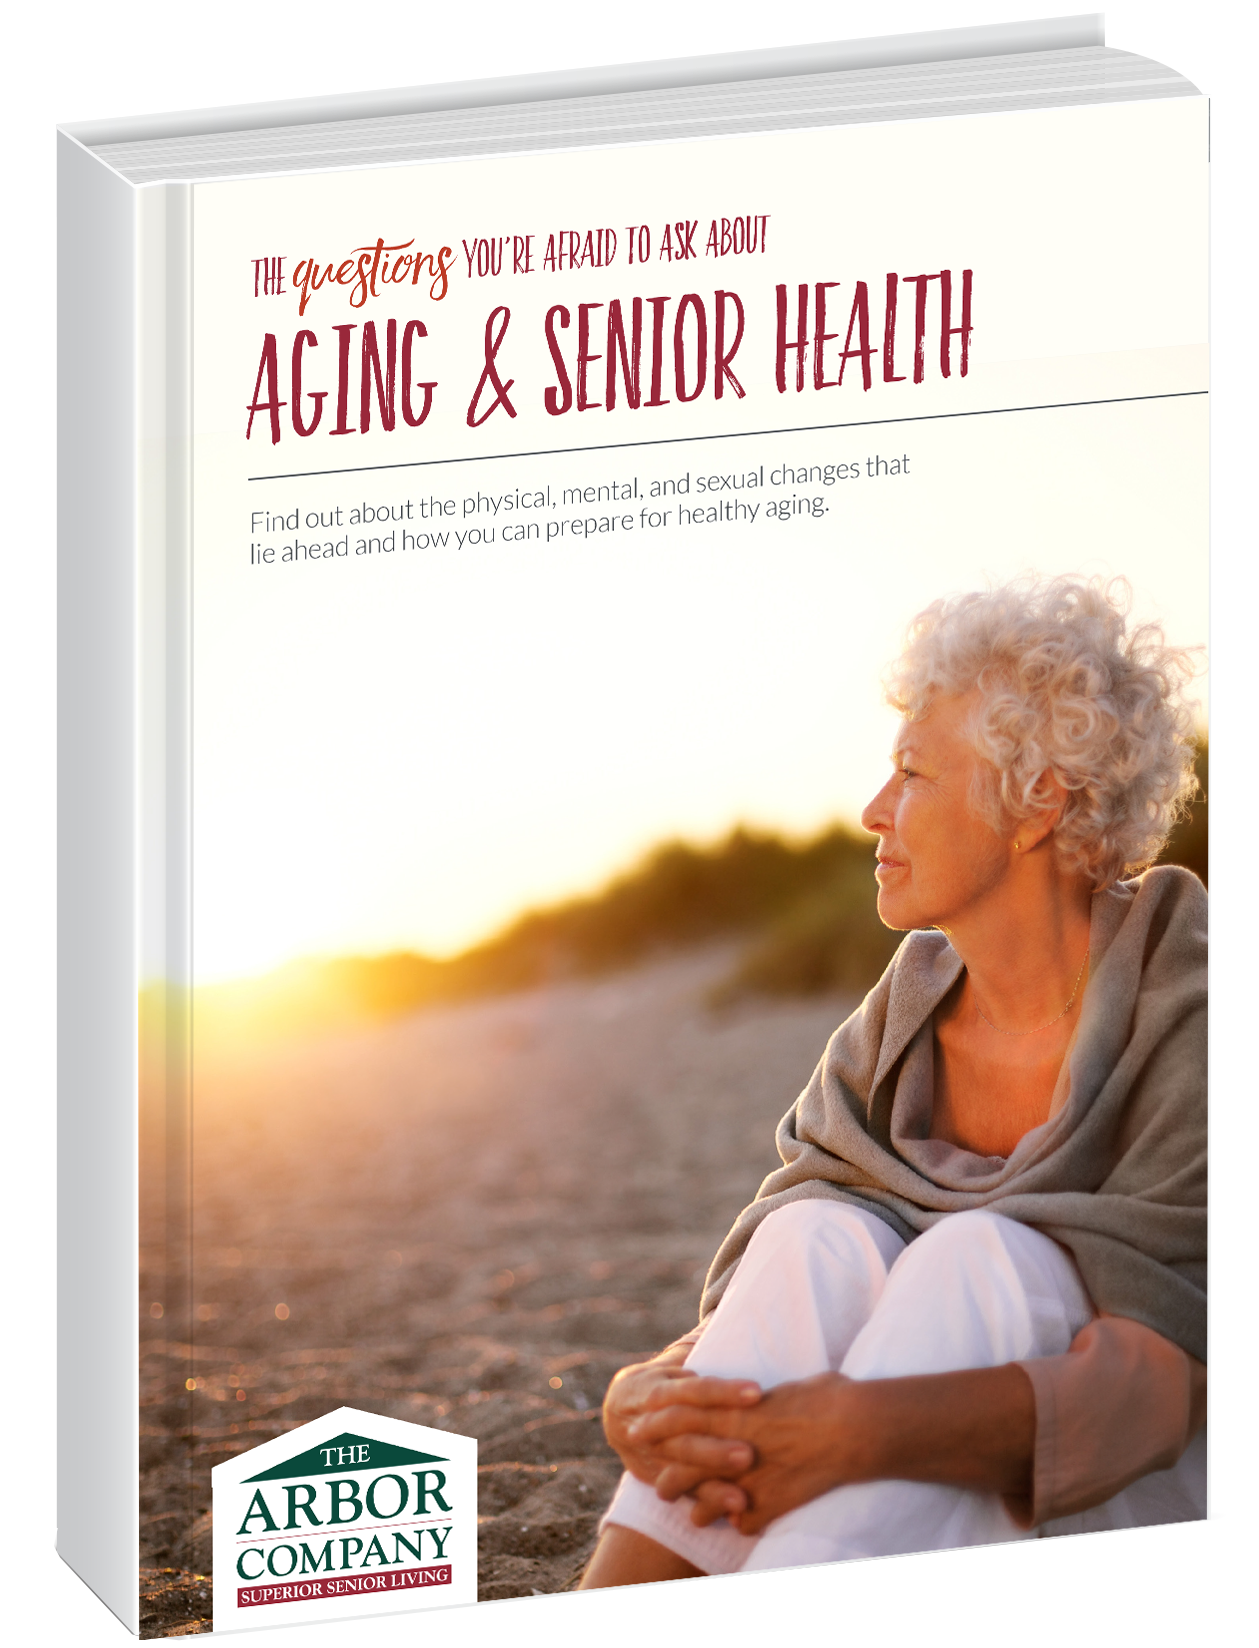 questions-you-are-afraid-to-ask-about-aging-and-senior-health